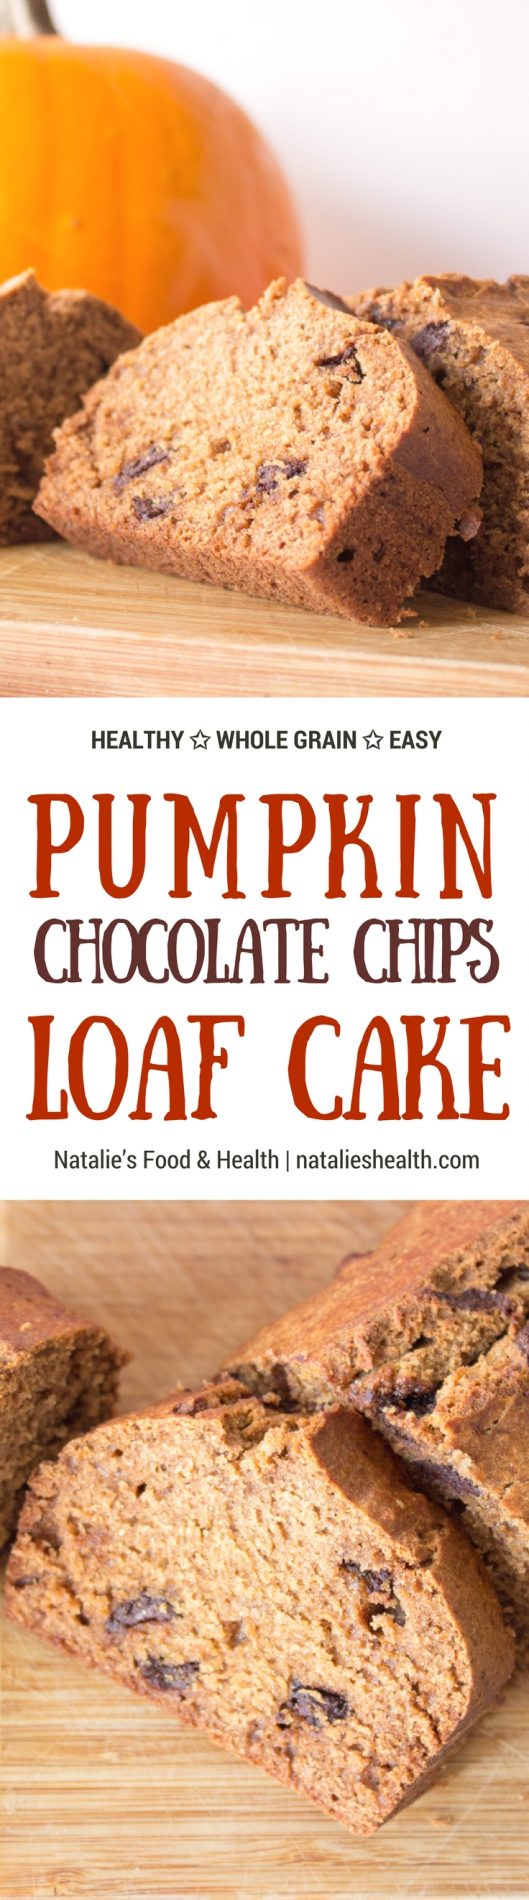 Delicious Pumpkin Loaf Cake made with all HEALTHY wholesome ingredients, packed with aromatic autumn spices - cinnamon, nutmeg, allspice and tons of sweet pumpkin flavor. #healthy #wholegrain #lowcalorie #skinny #pumpkin #holiday #thanksgiving #kidsfriendly #choocolate #fall #dessert | www.natalieshealth.com